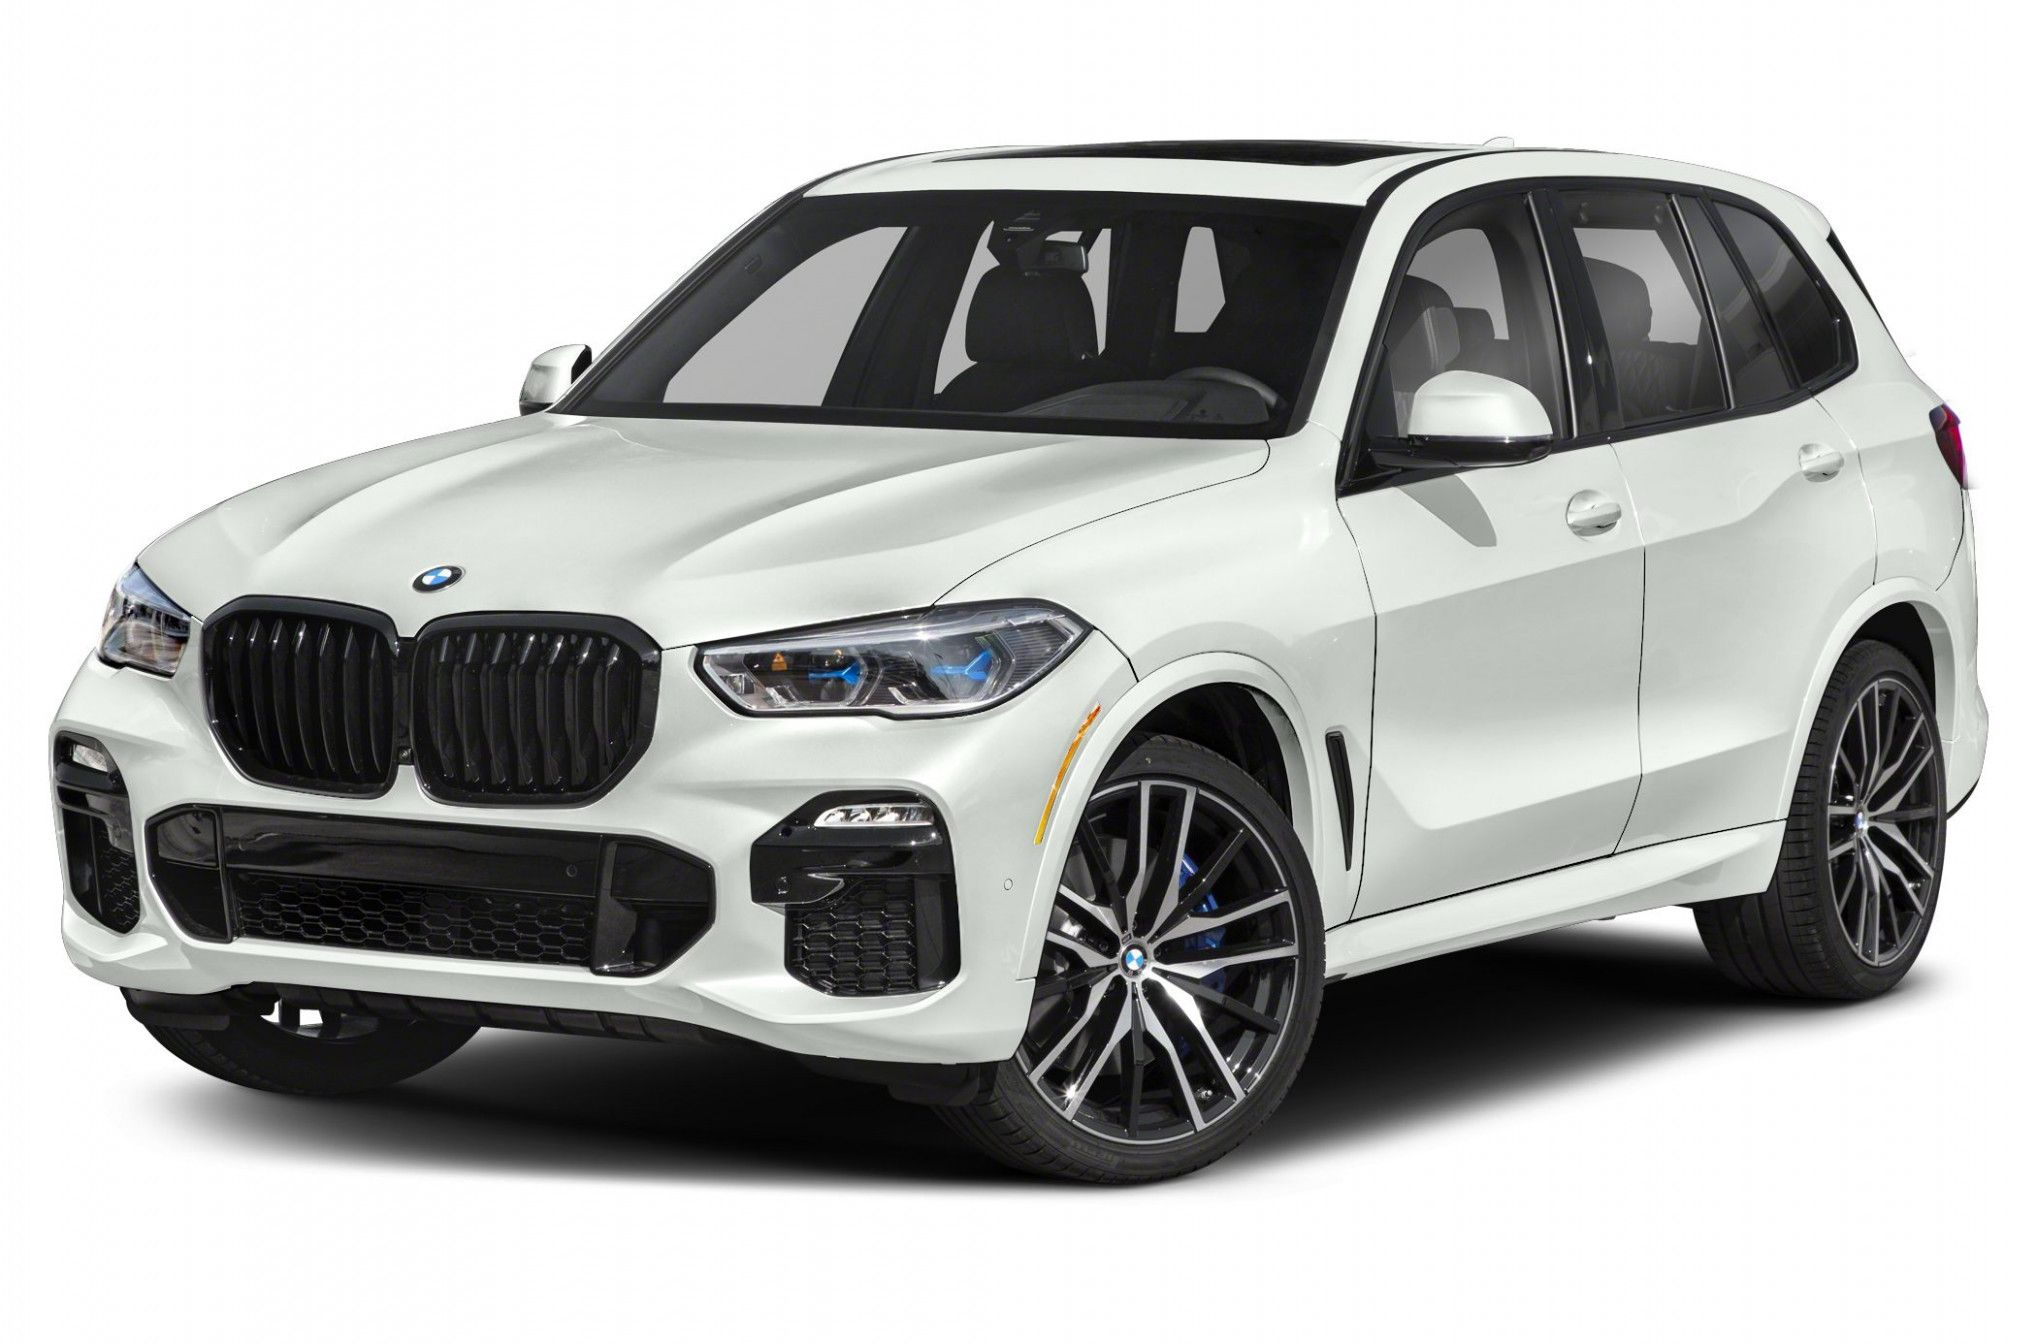 X5 M50i Price In 2020 Bmw Suv Suv Bmw X5 M